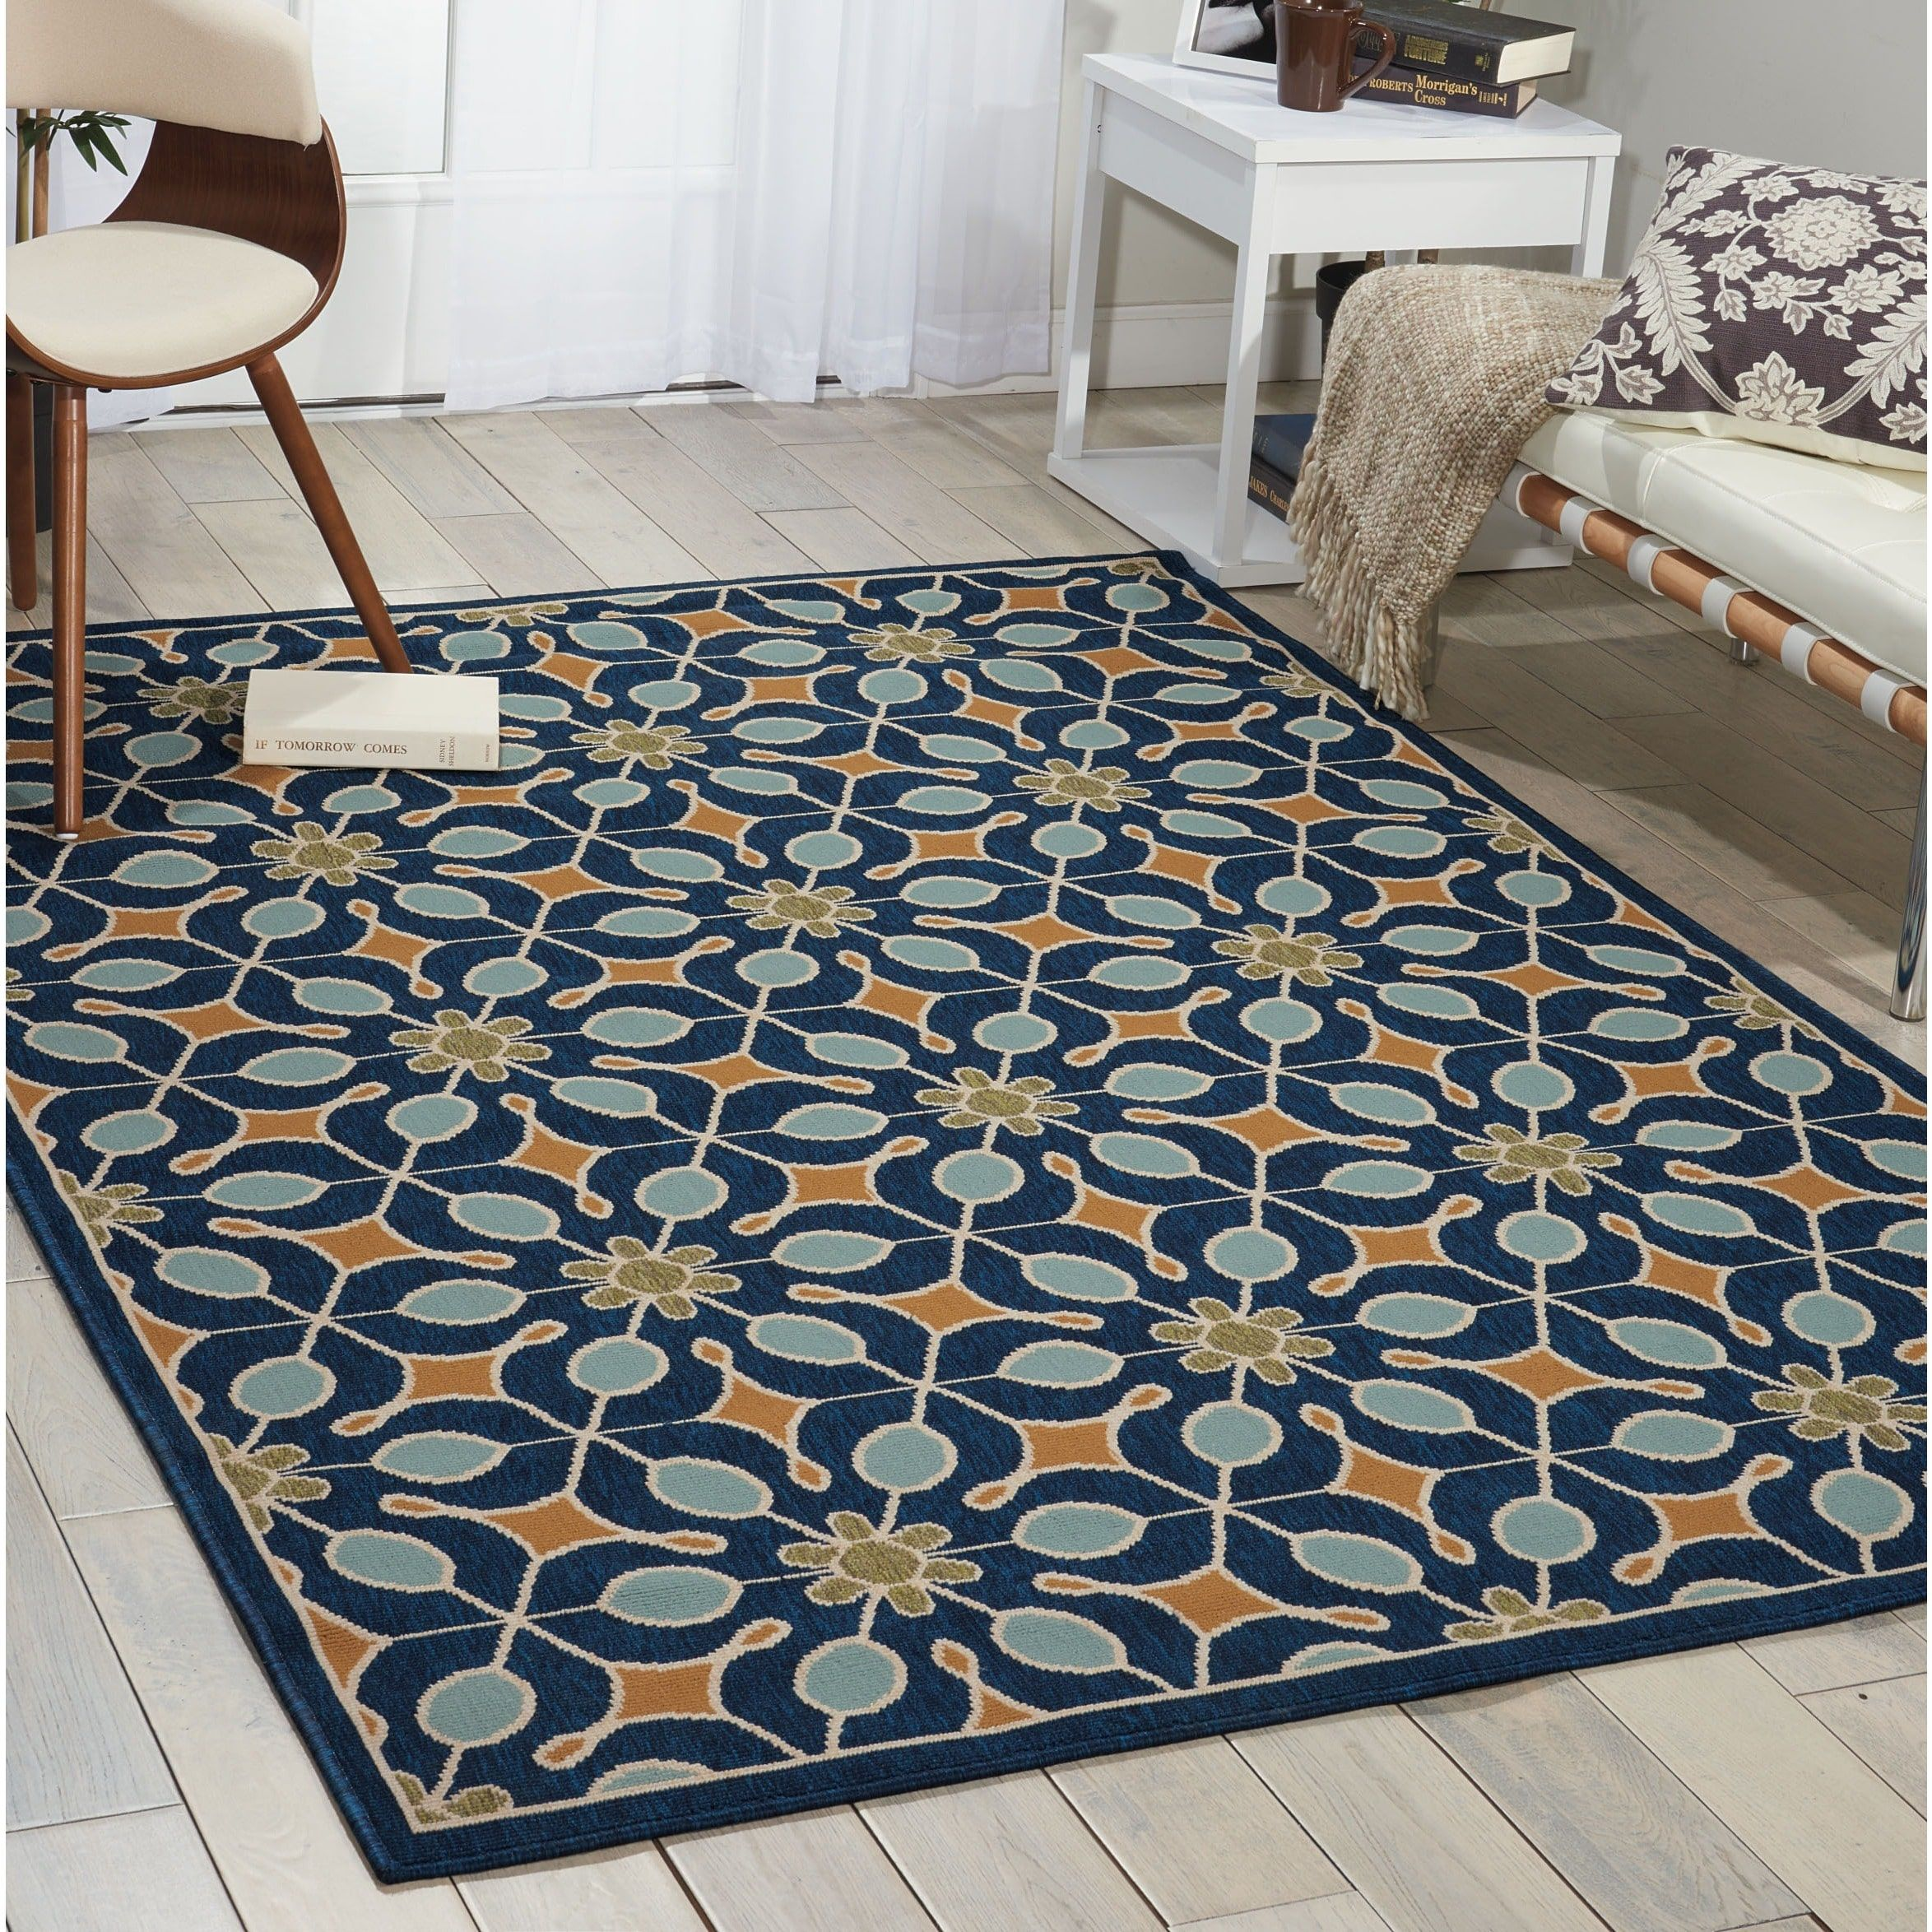 4 X 6 Outdoor Area Rugs Free Shipping On Orders Over 45